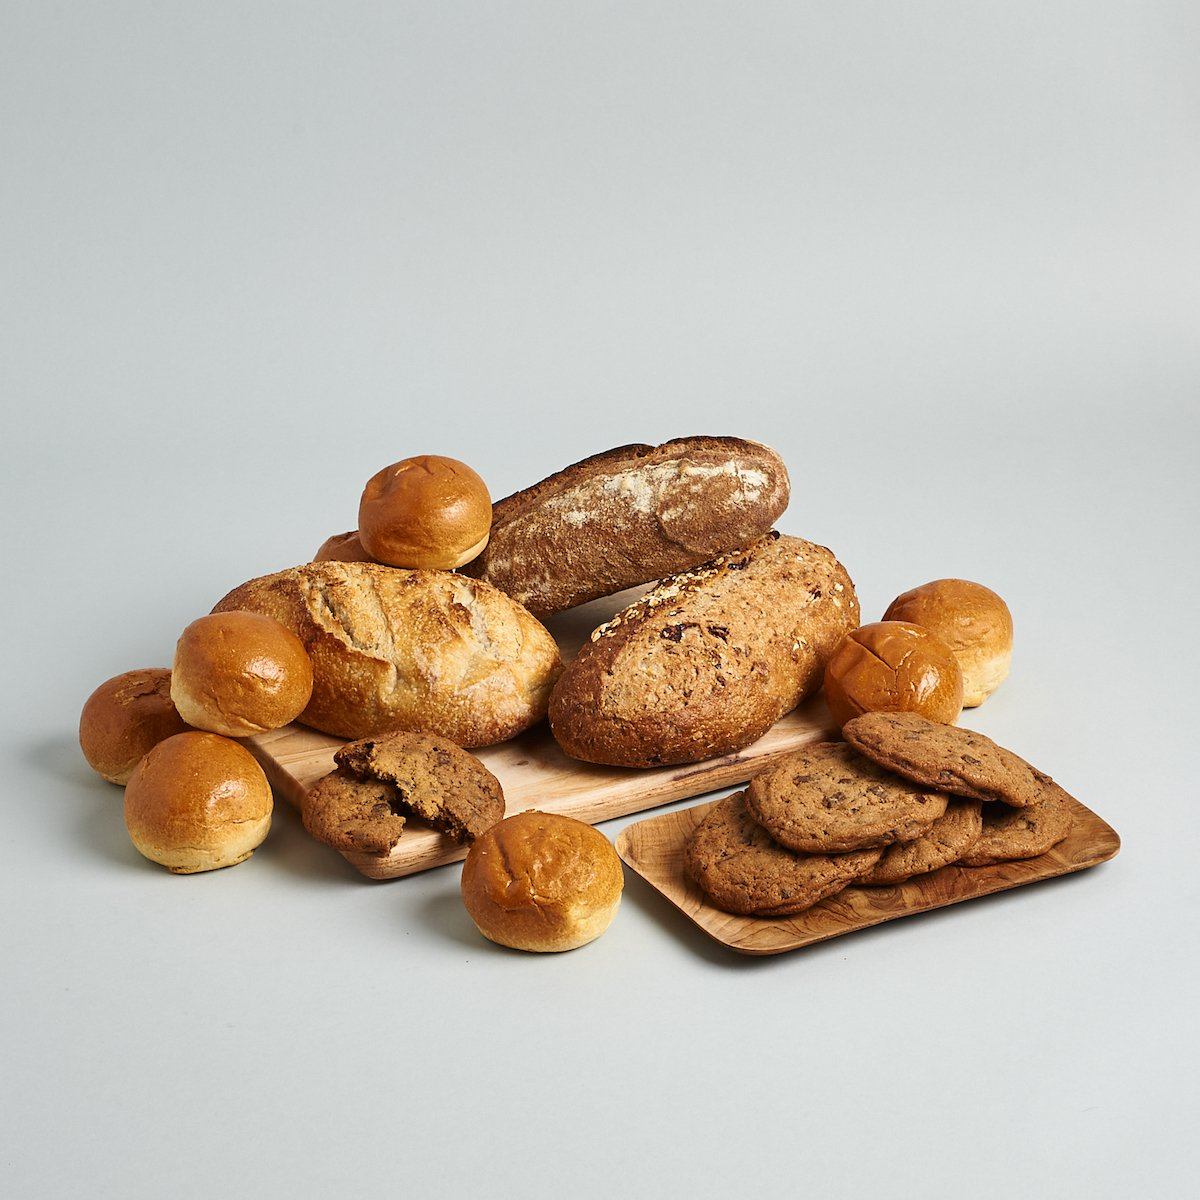 Wildgrain Review: This Bake-at-Home Bread Subscription Will Turn Your Kitchen Into a Boulangerie